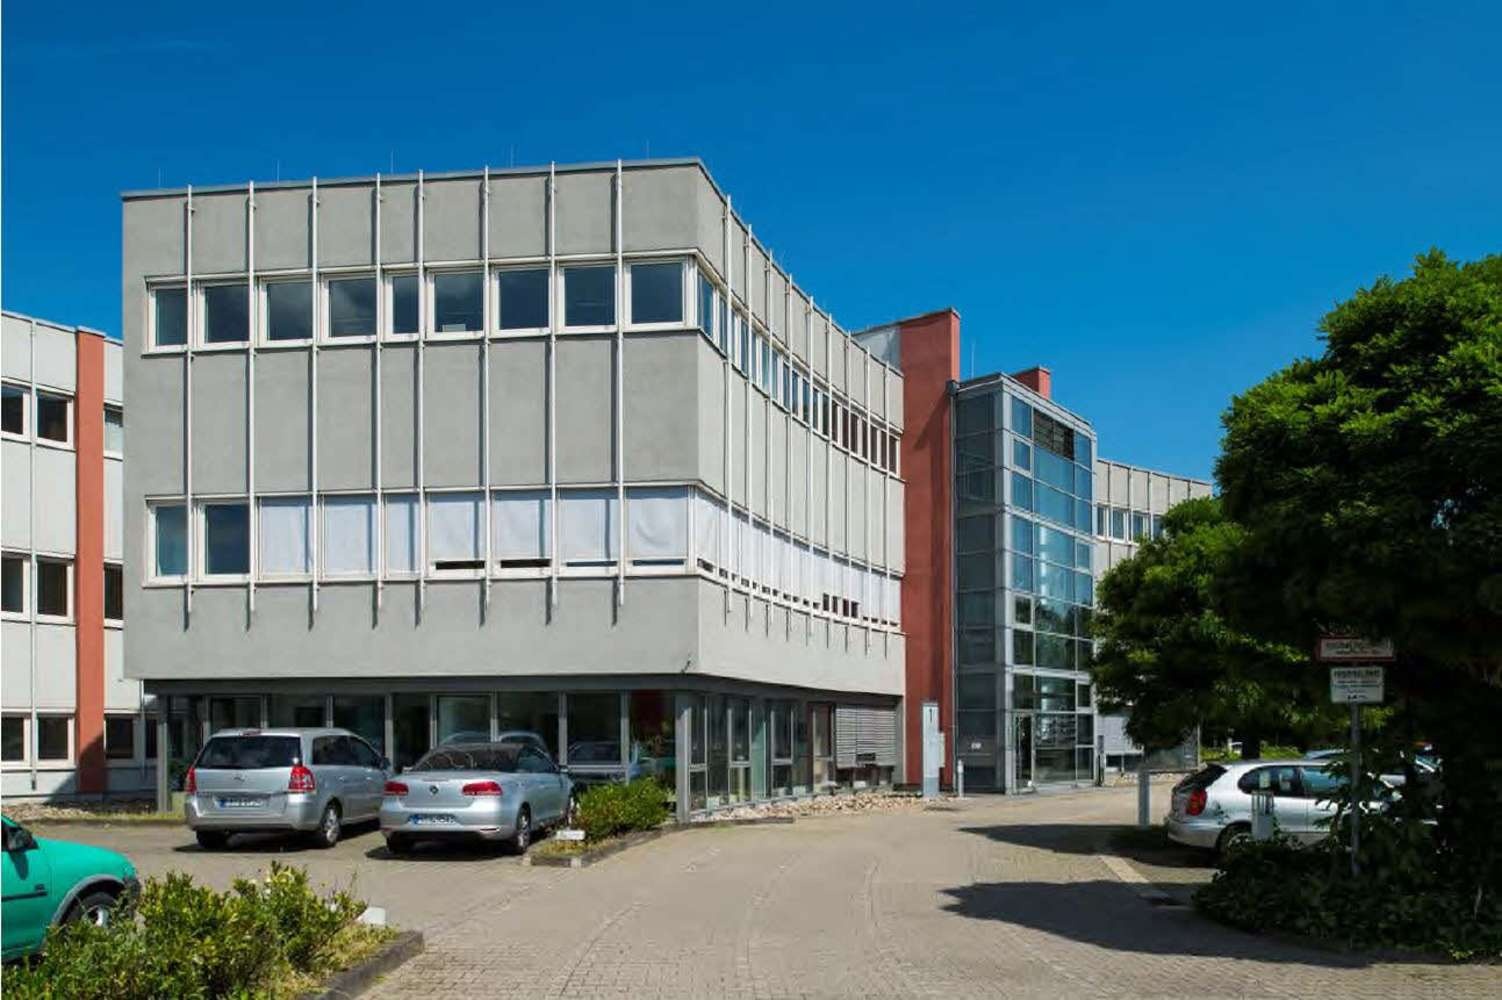 Büros Bad homburg, 61352 - Büro - Bad Homburg, Ober-Eschbach - F0273 - 9524832